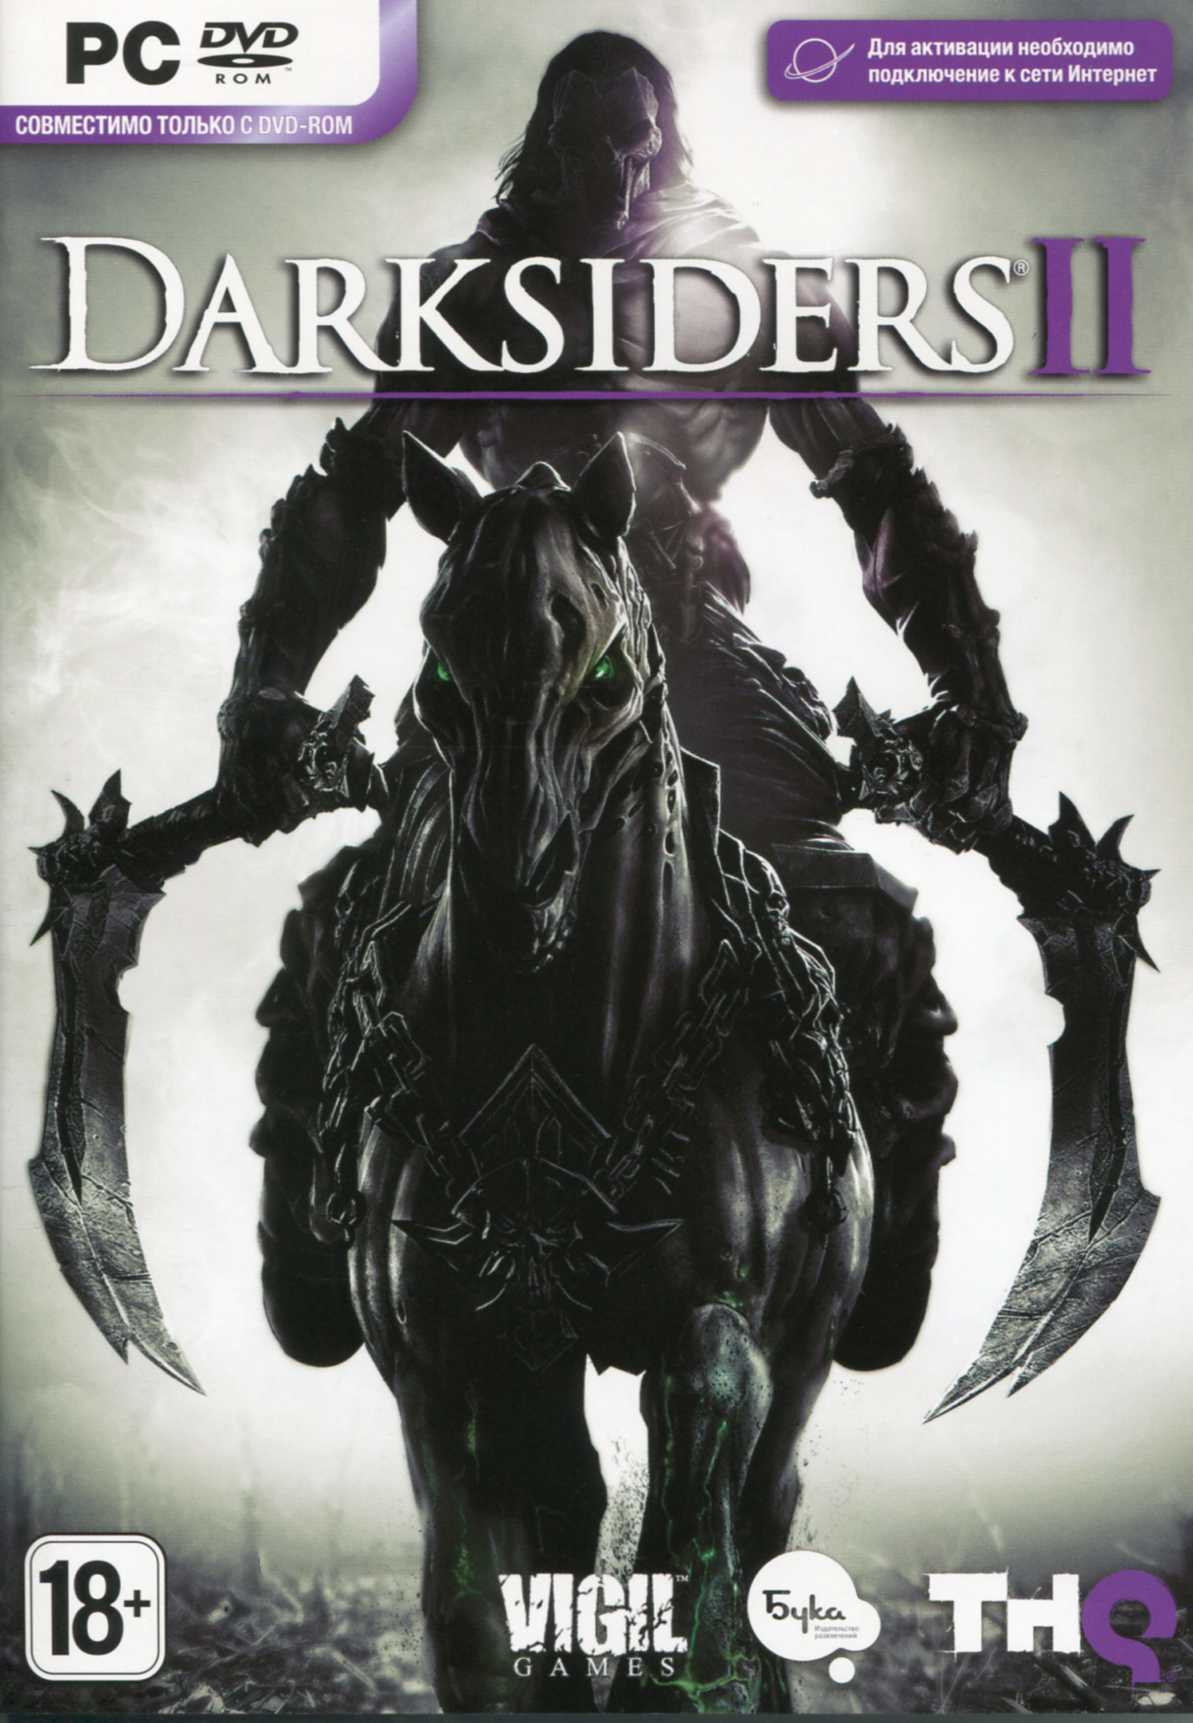 Darksiders 2 II (Steam KEY) + БОНУС